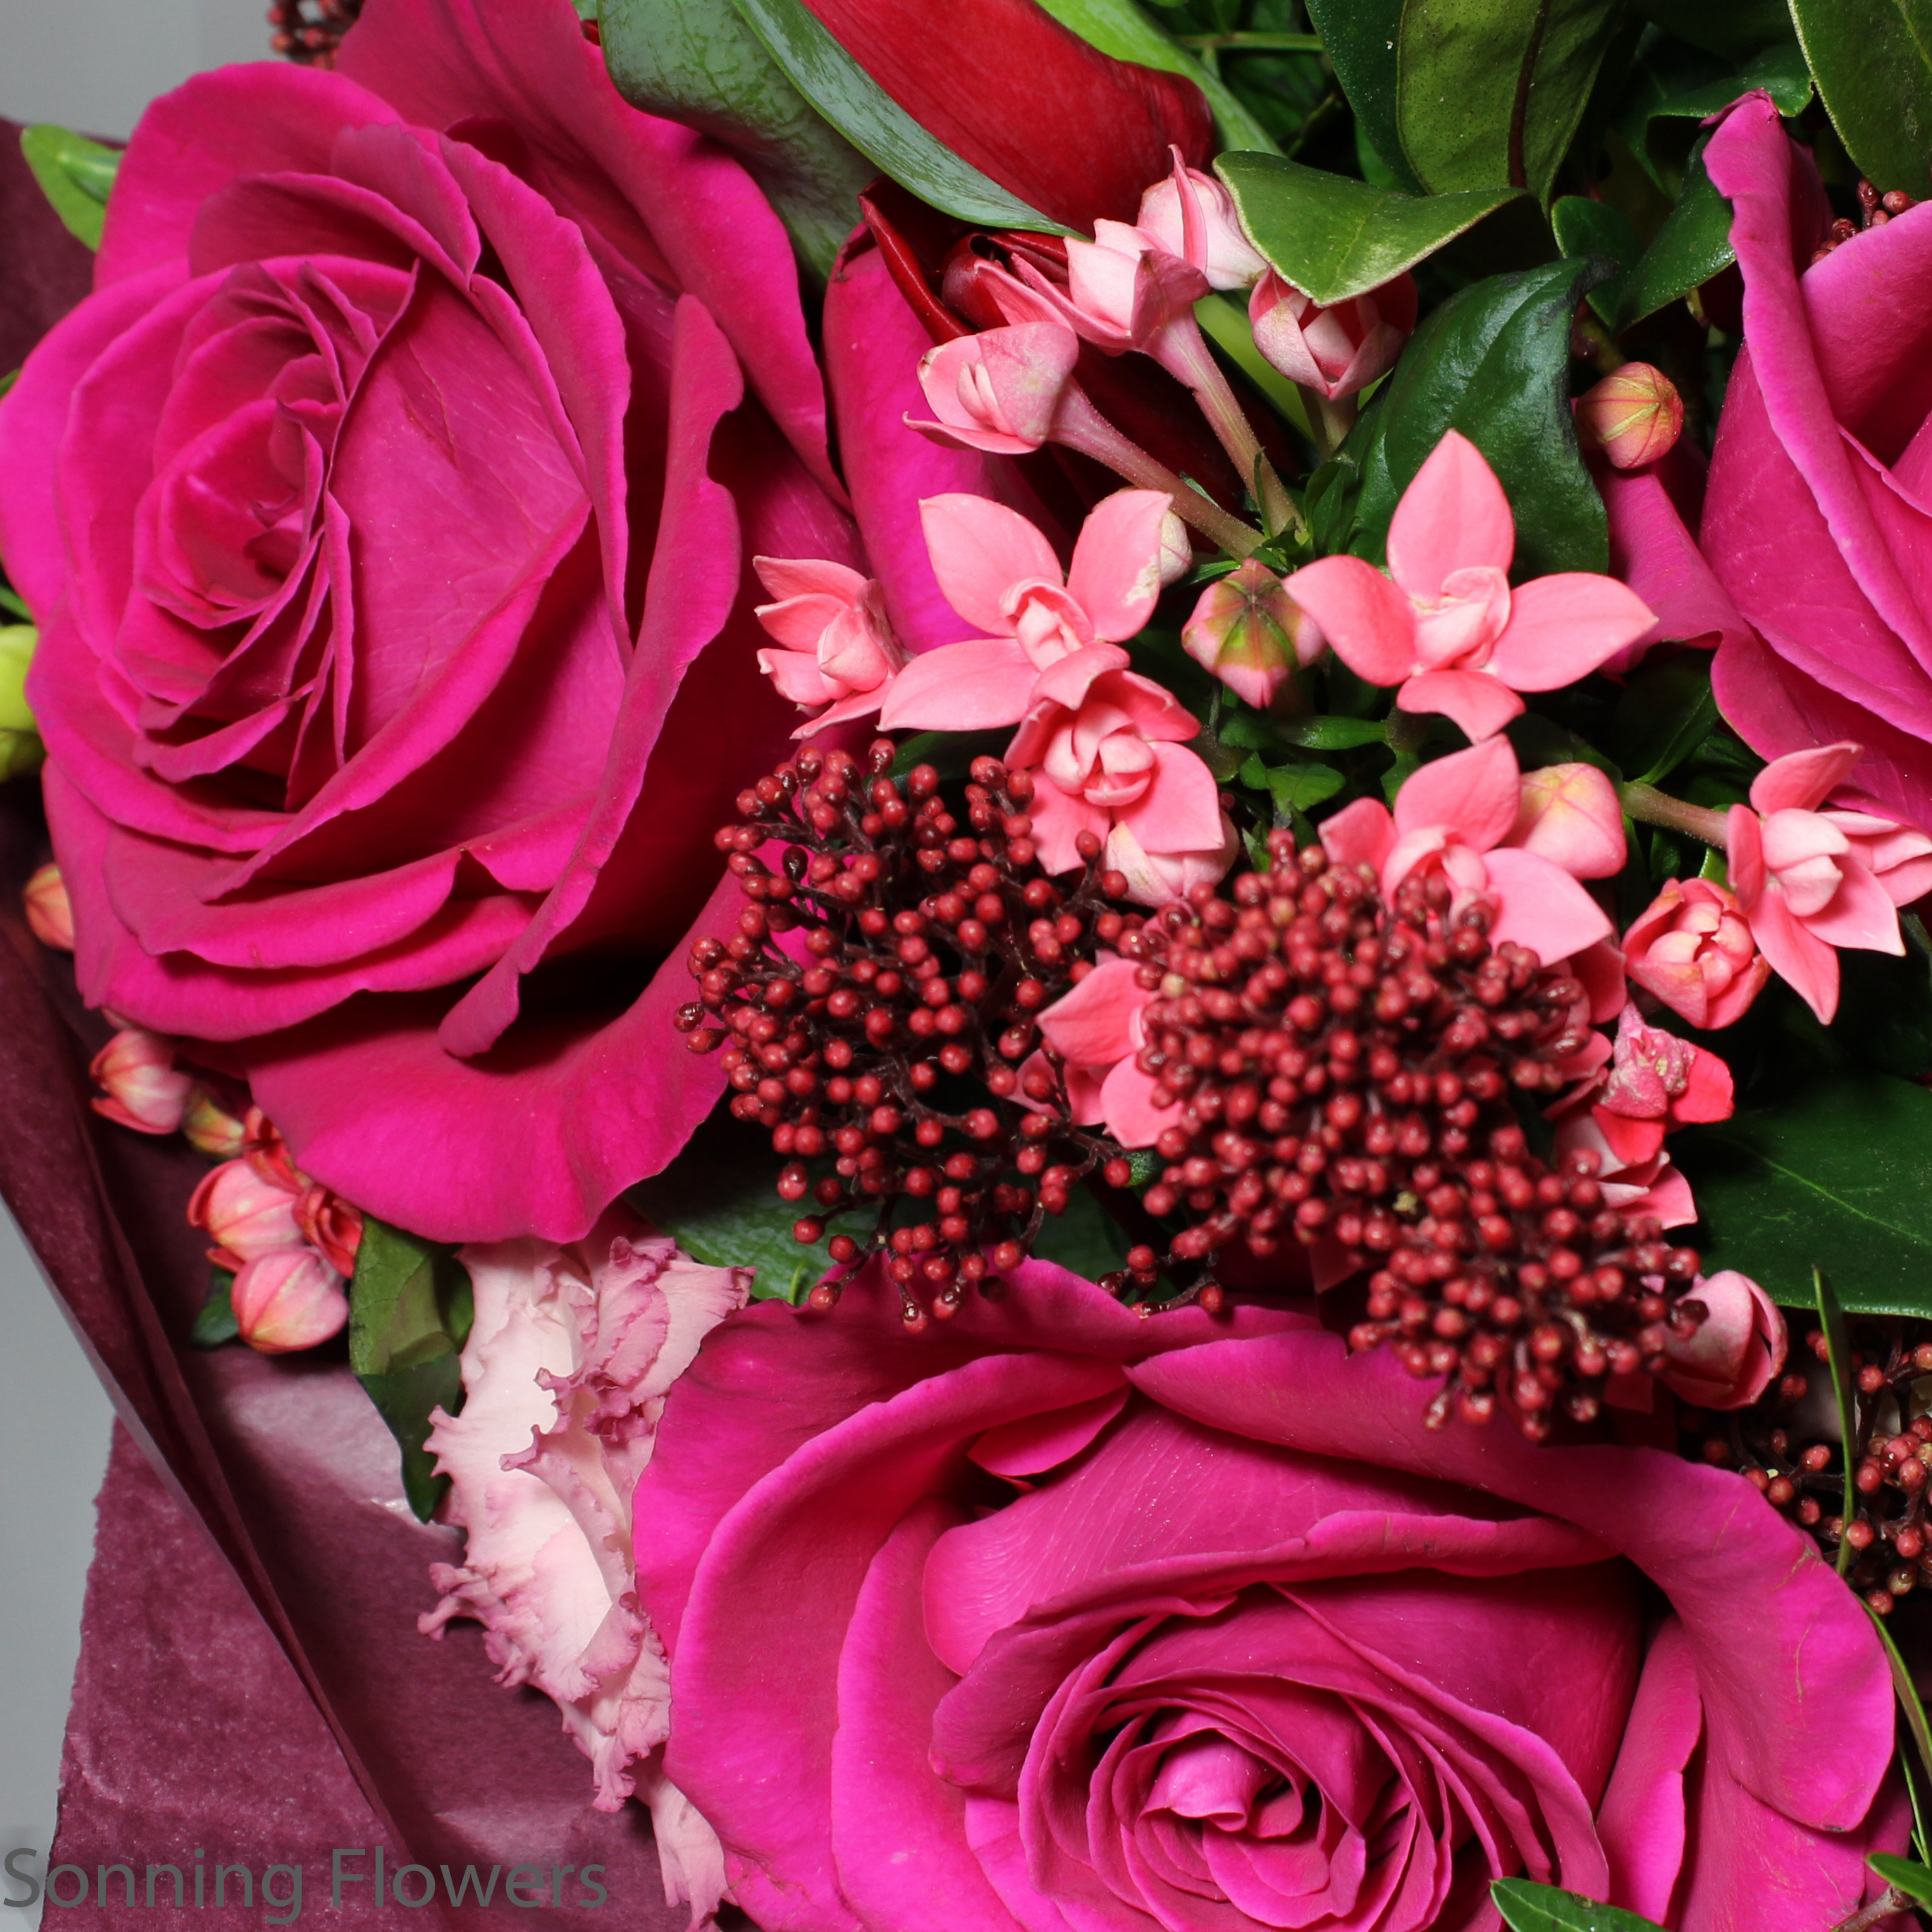 Vibrant Luxury Bouquet - Sonning Flowers